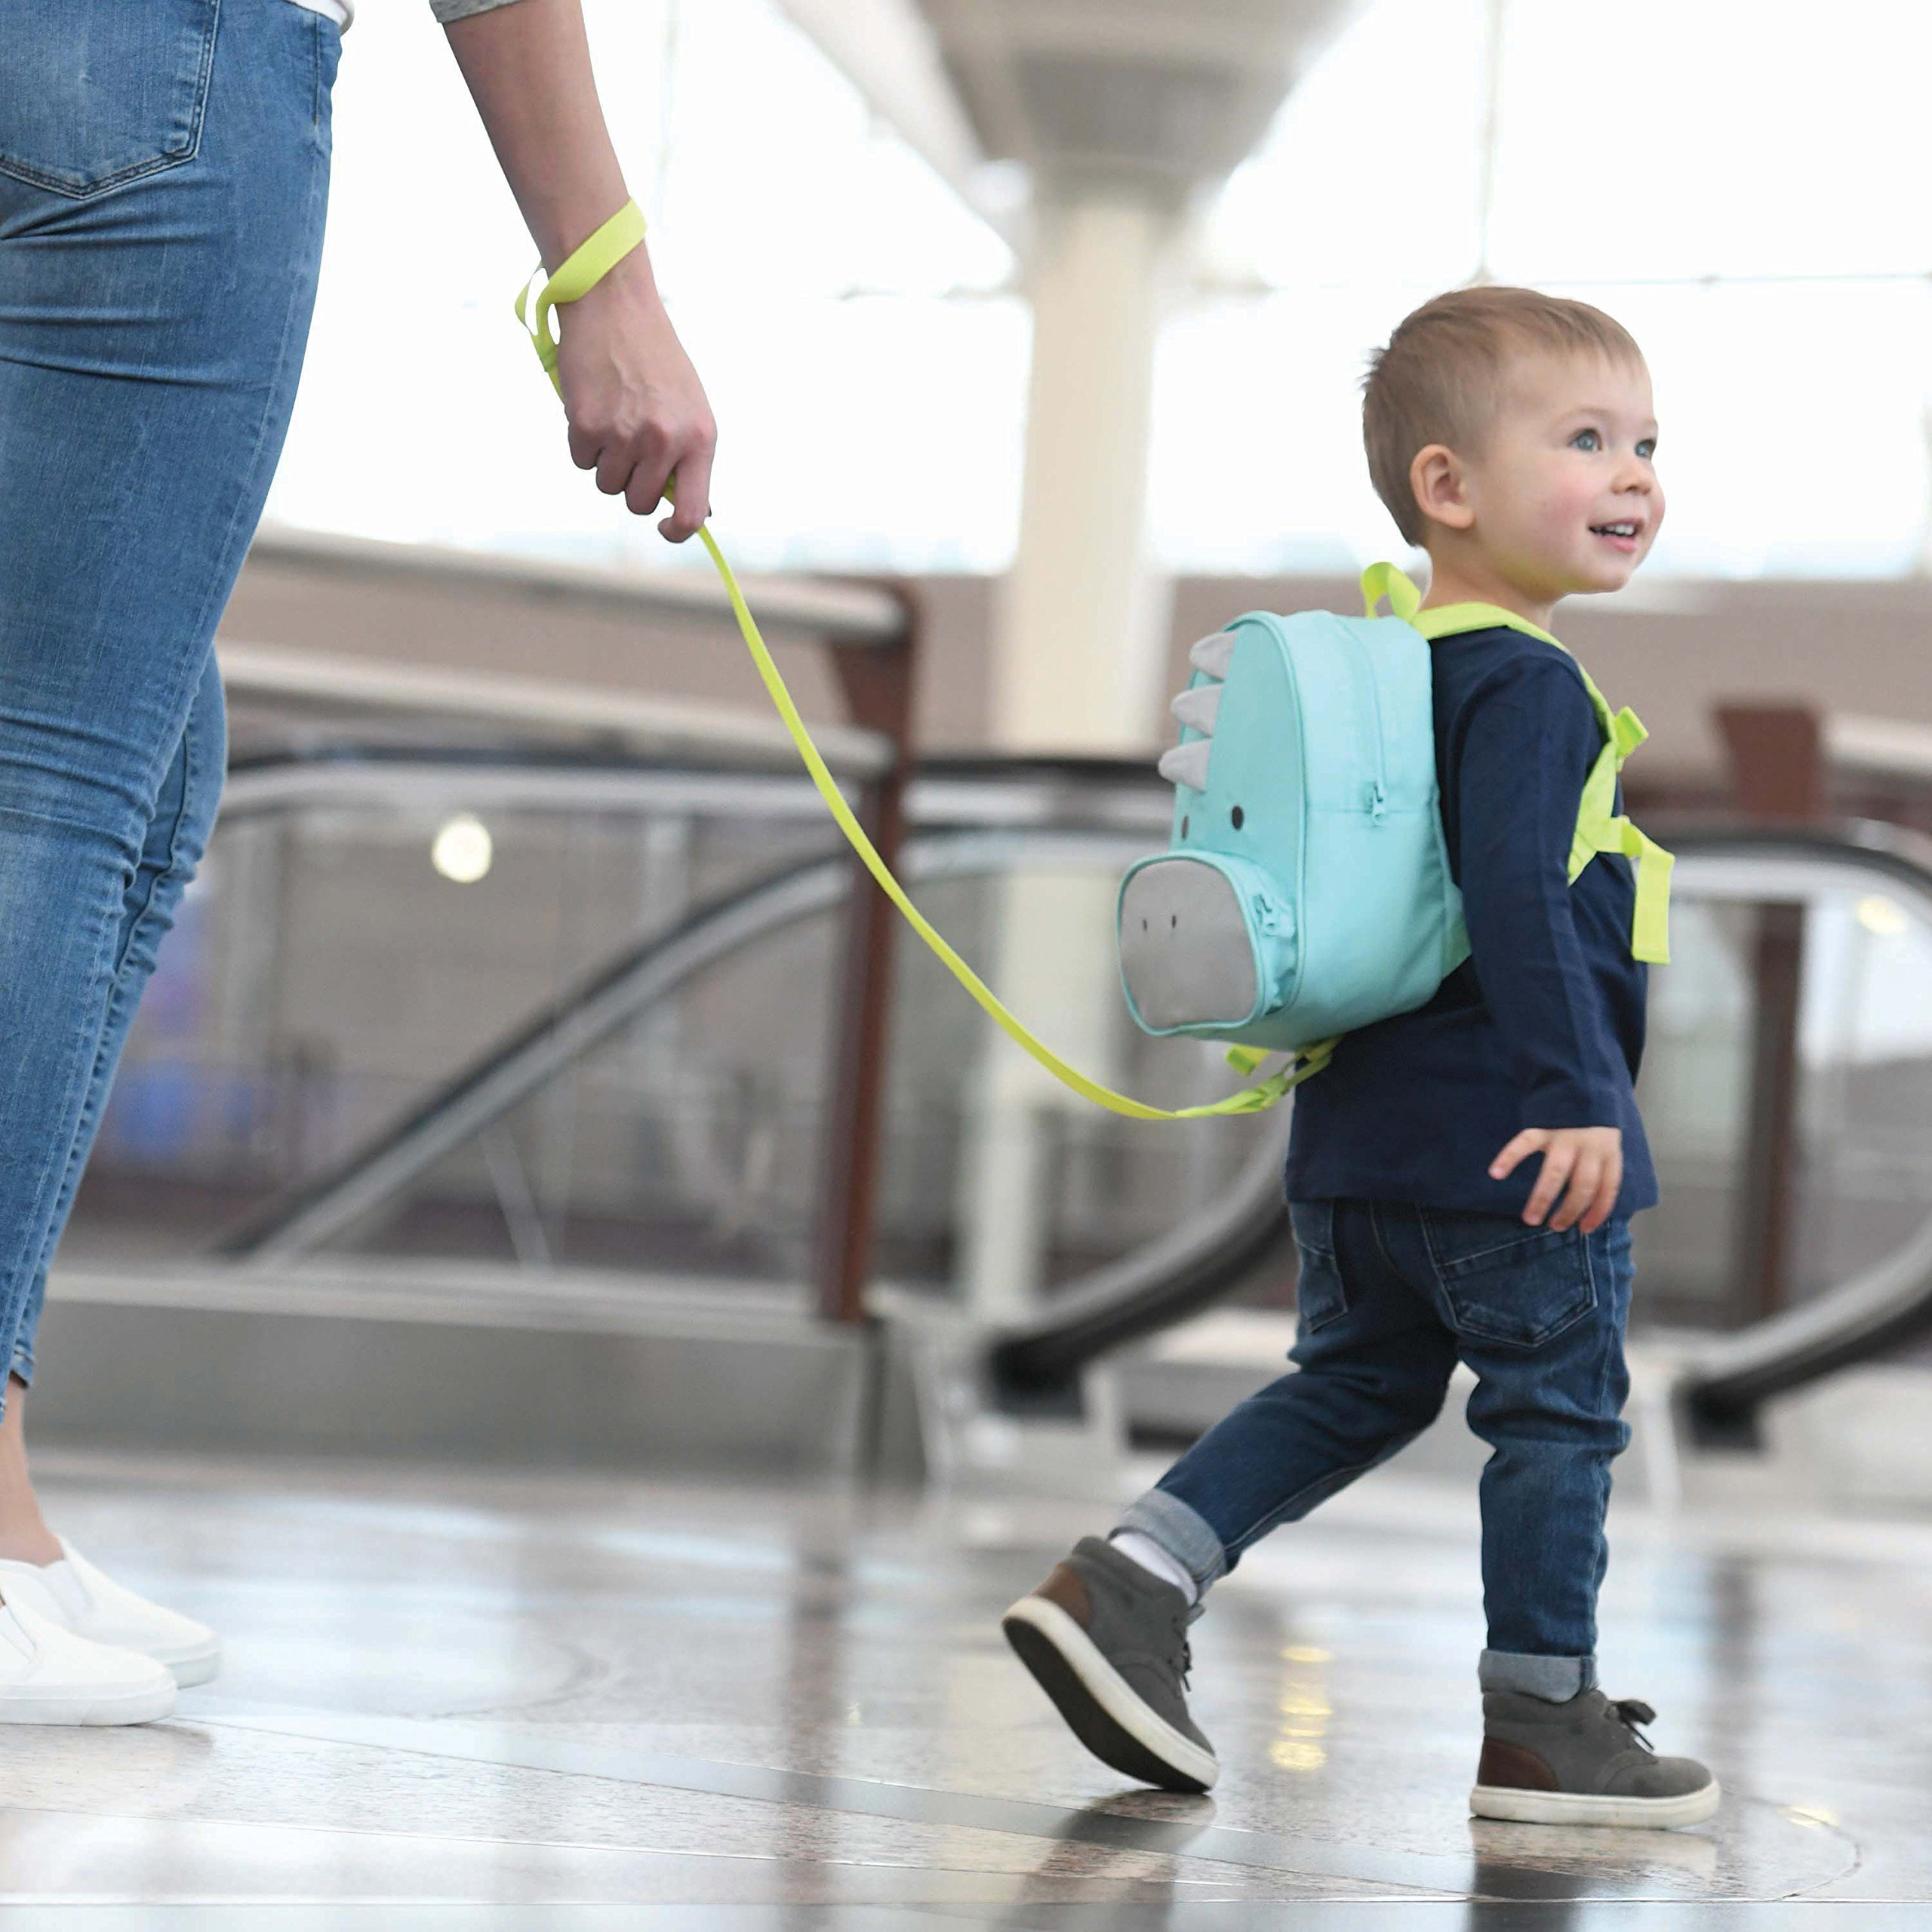 Travel Bug Toddler Safety Dinosaur Backpack Harness with Removable Tether, Teal/Grey by Travel Bug (Image #2)